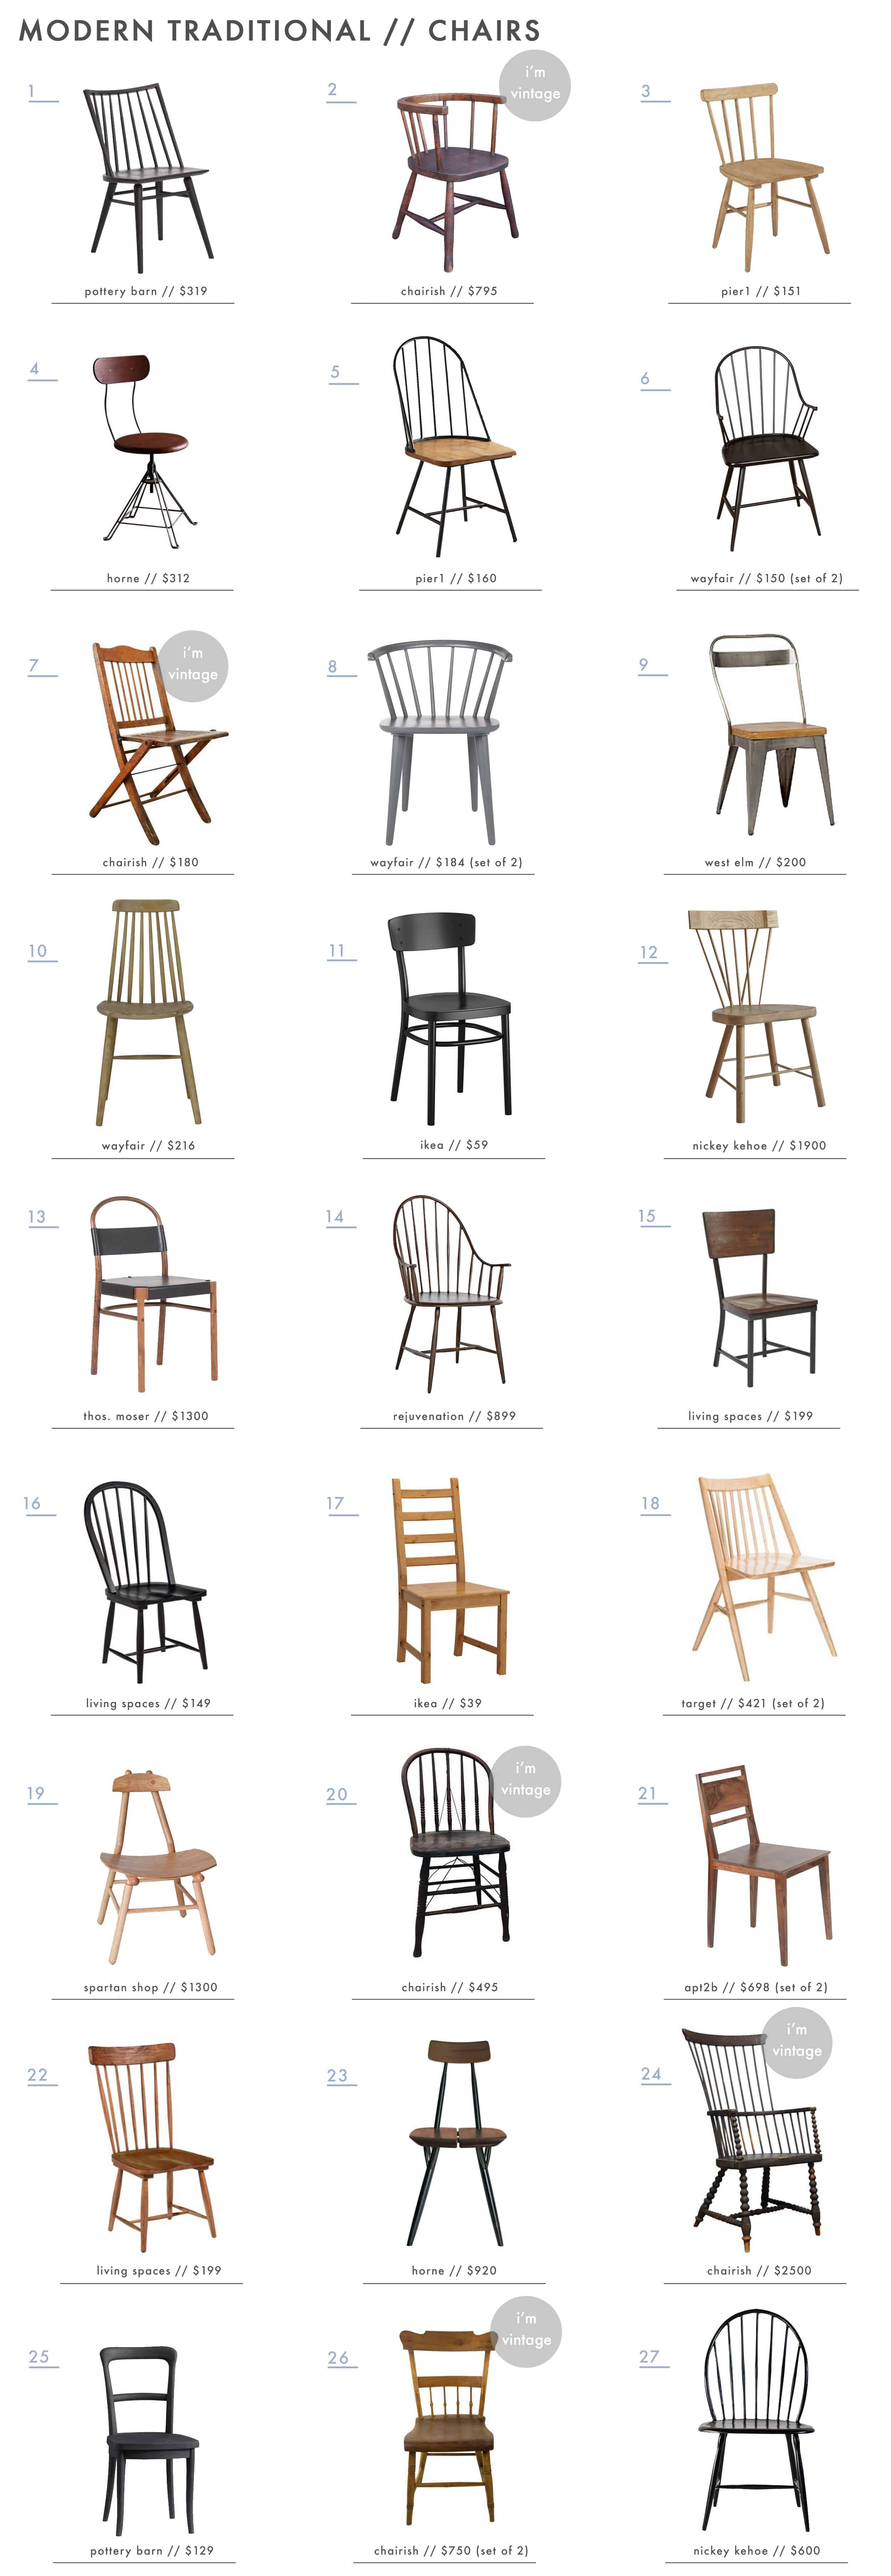 Emily Henderson Modern Simplified Traditional Furniture Chairs Roundup 1 1